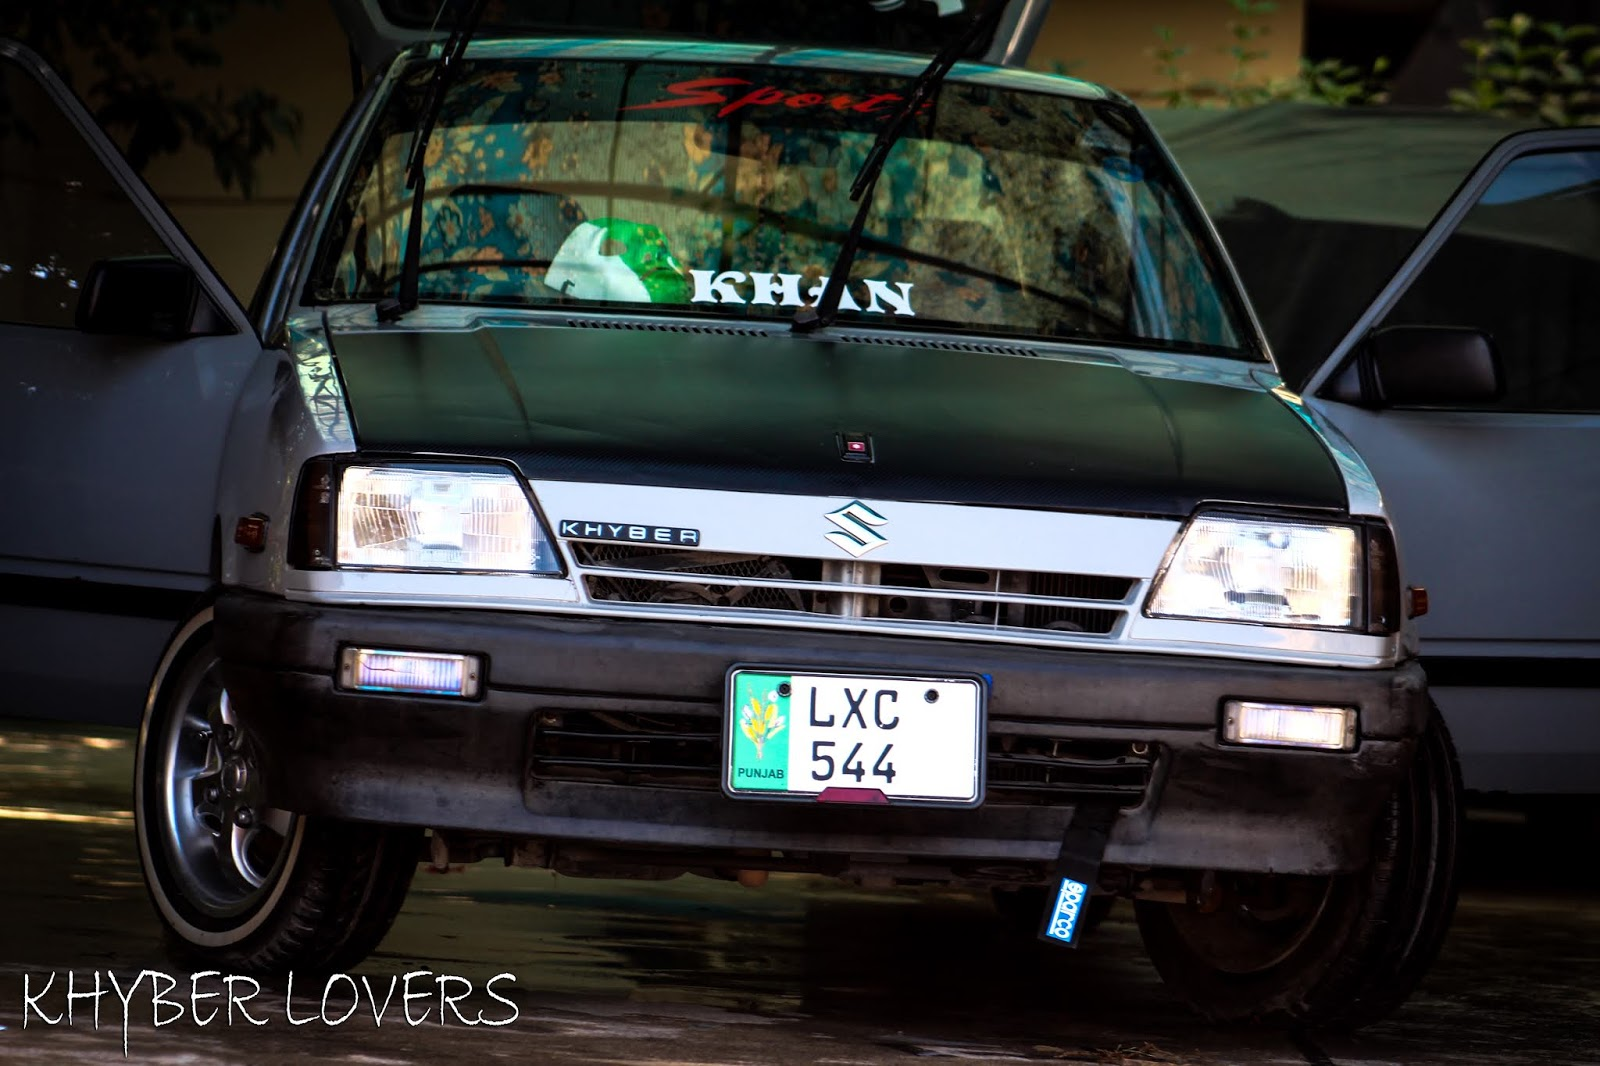 Khyber Lovers